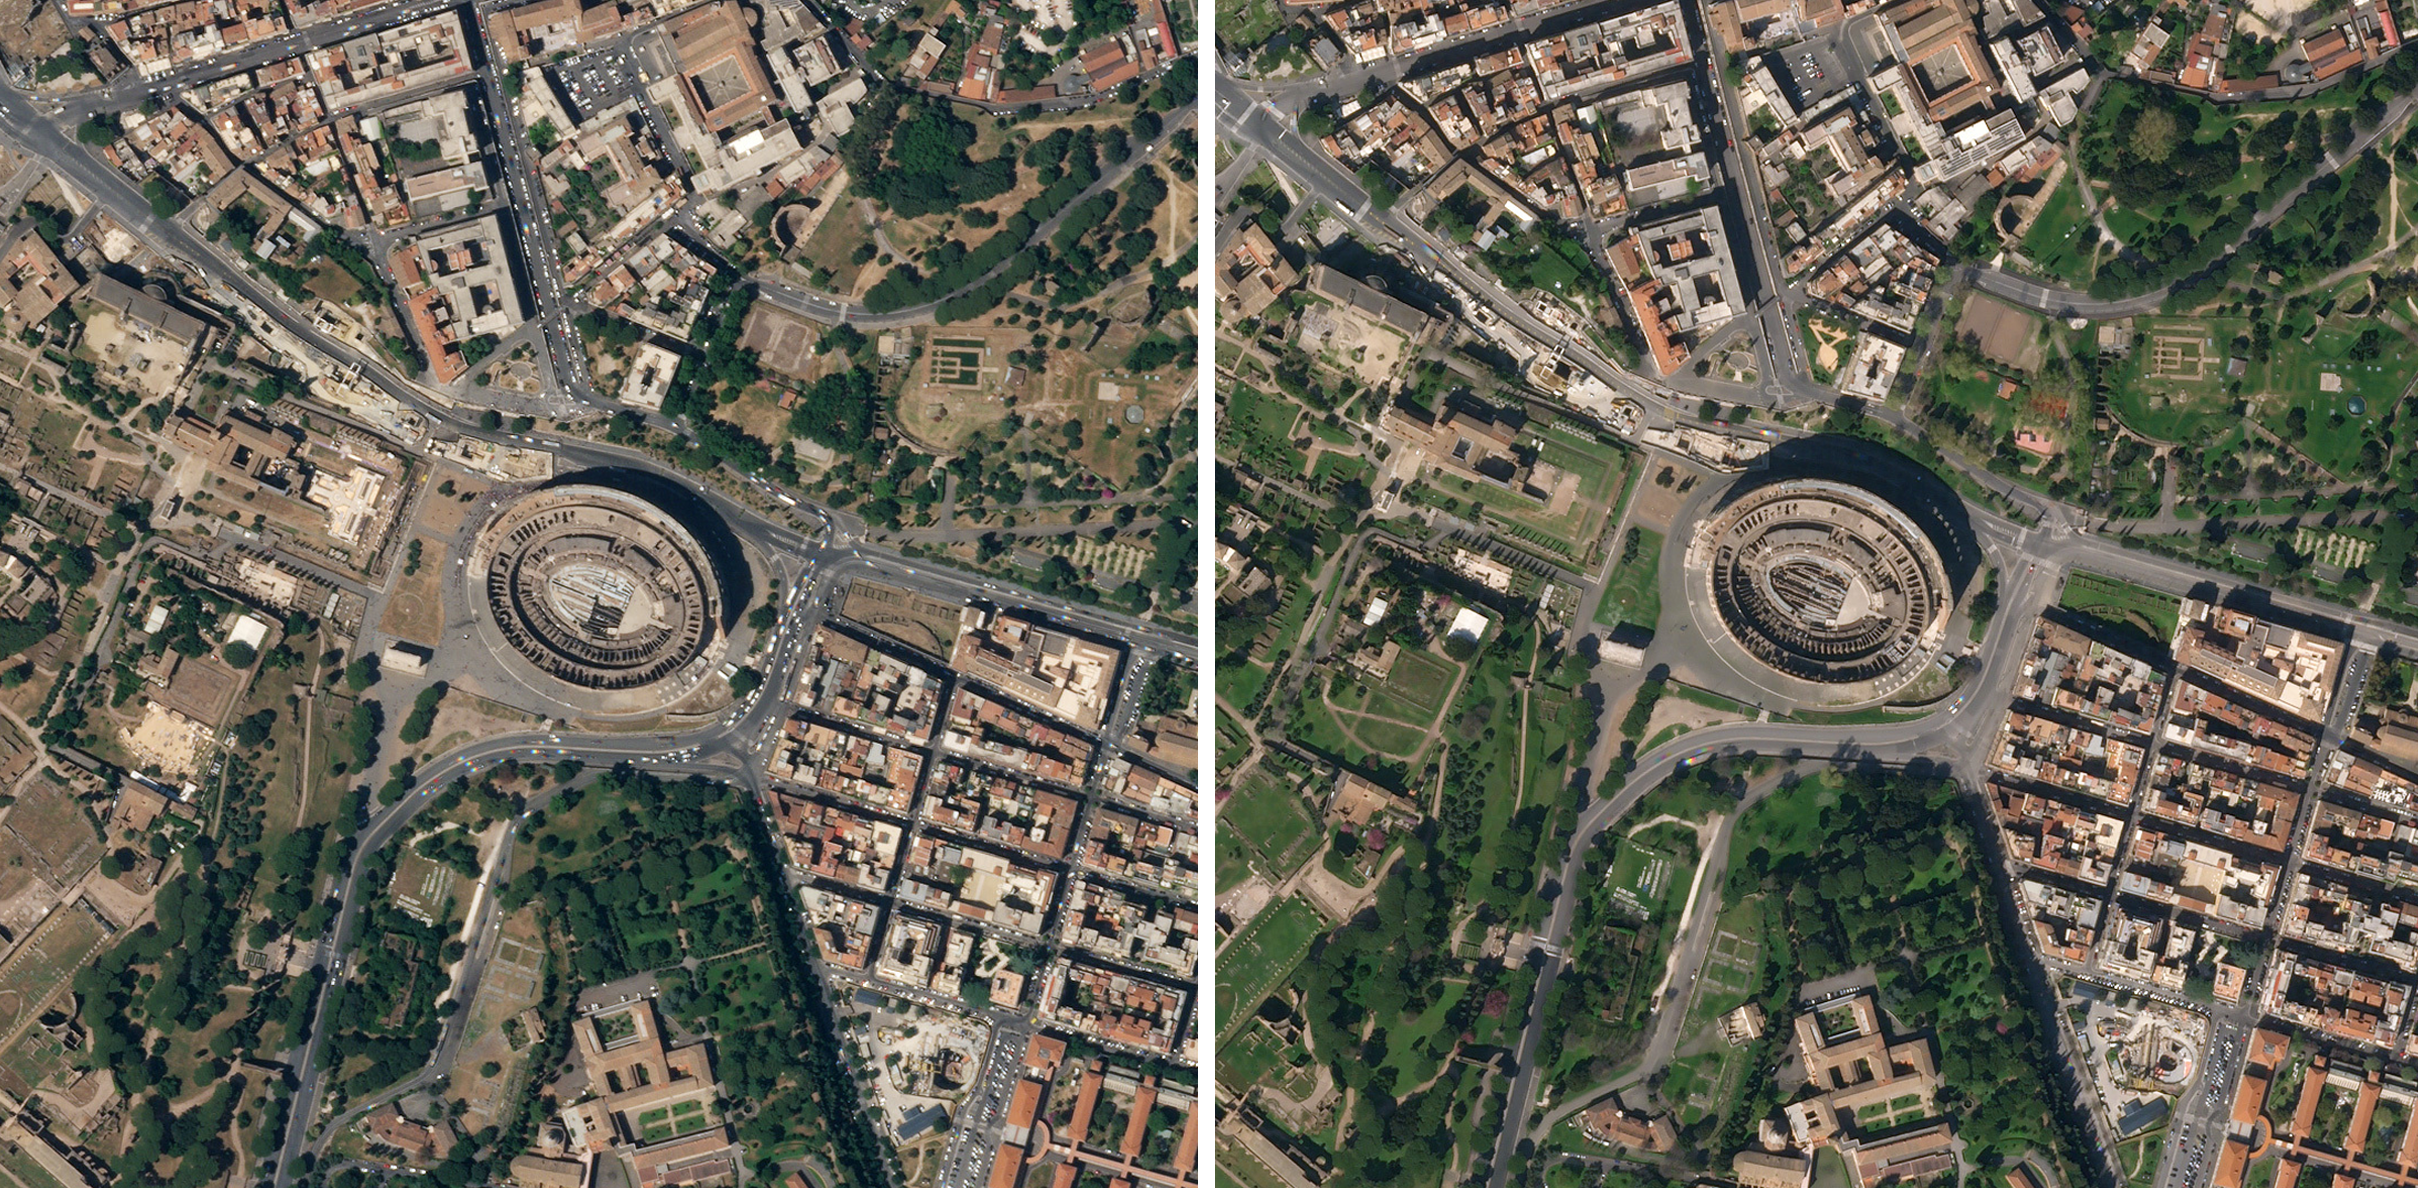 The typical queue that forms at the entrance to the Colosseum in Italy was absent in this SkySat image from April 6, 2020. Compared to July 5, 2019, traffic on the surrounding streets was greatly reduced. The Colosseum is among the many tourist sites around the world temporarily shut down in an effort to slow the spread of COVID-19. © 2020, Planet Labs Inc. All Rights Reserved.